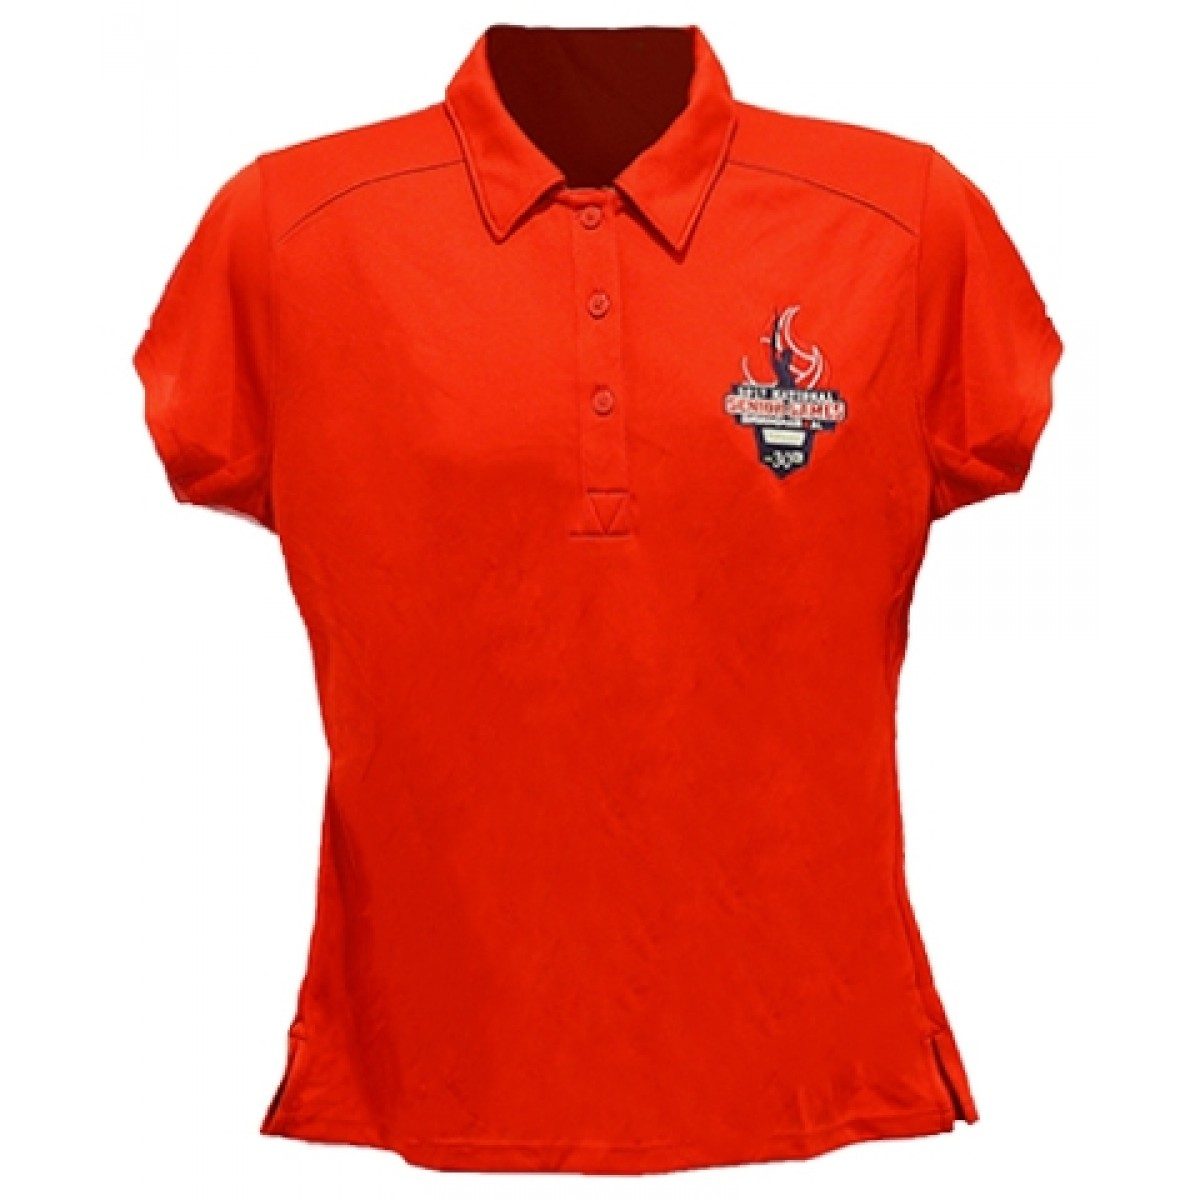 Ladies Dri-fit Embroidered Polo